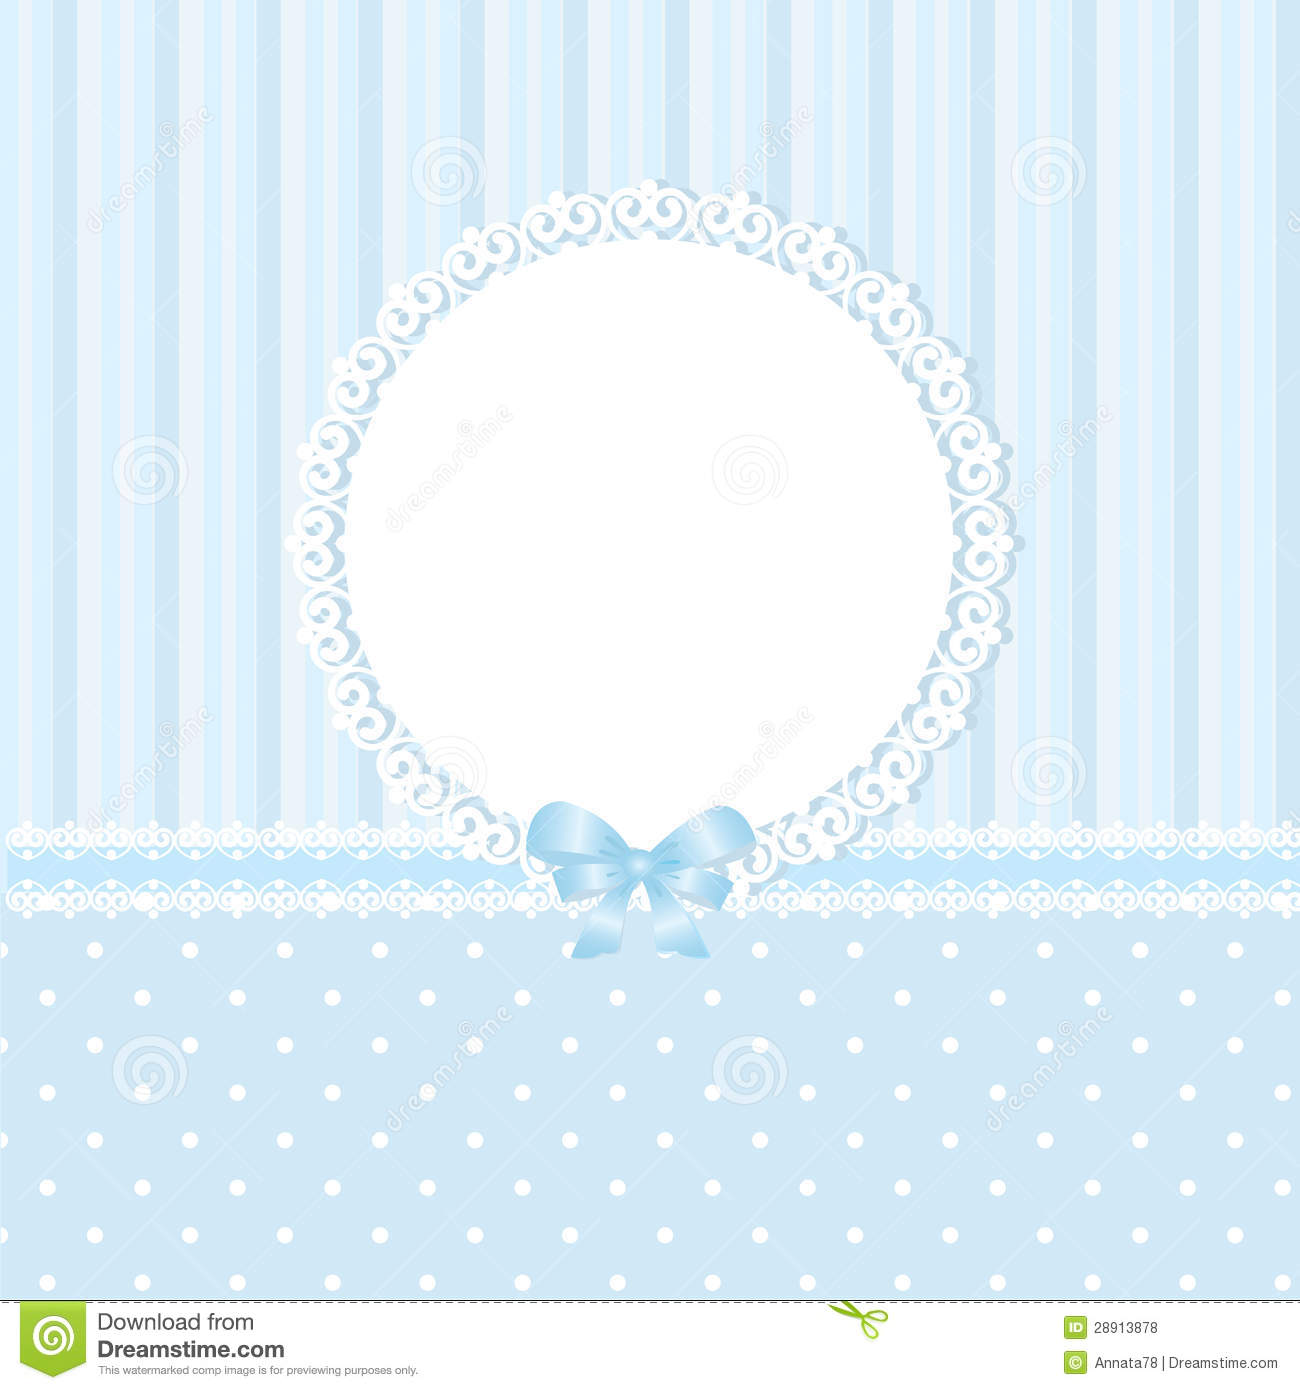 Christening Invitation Free Template with great invitations example